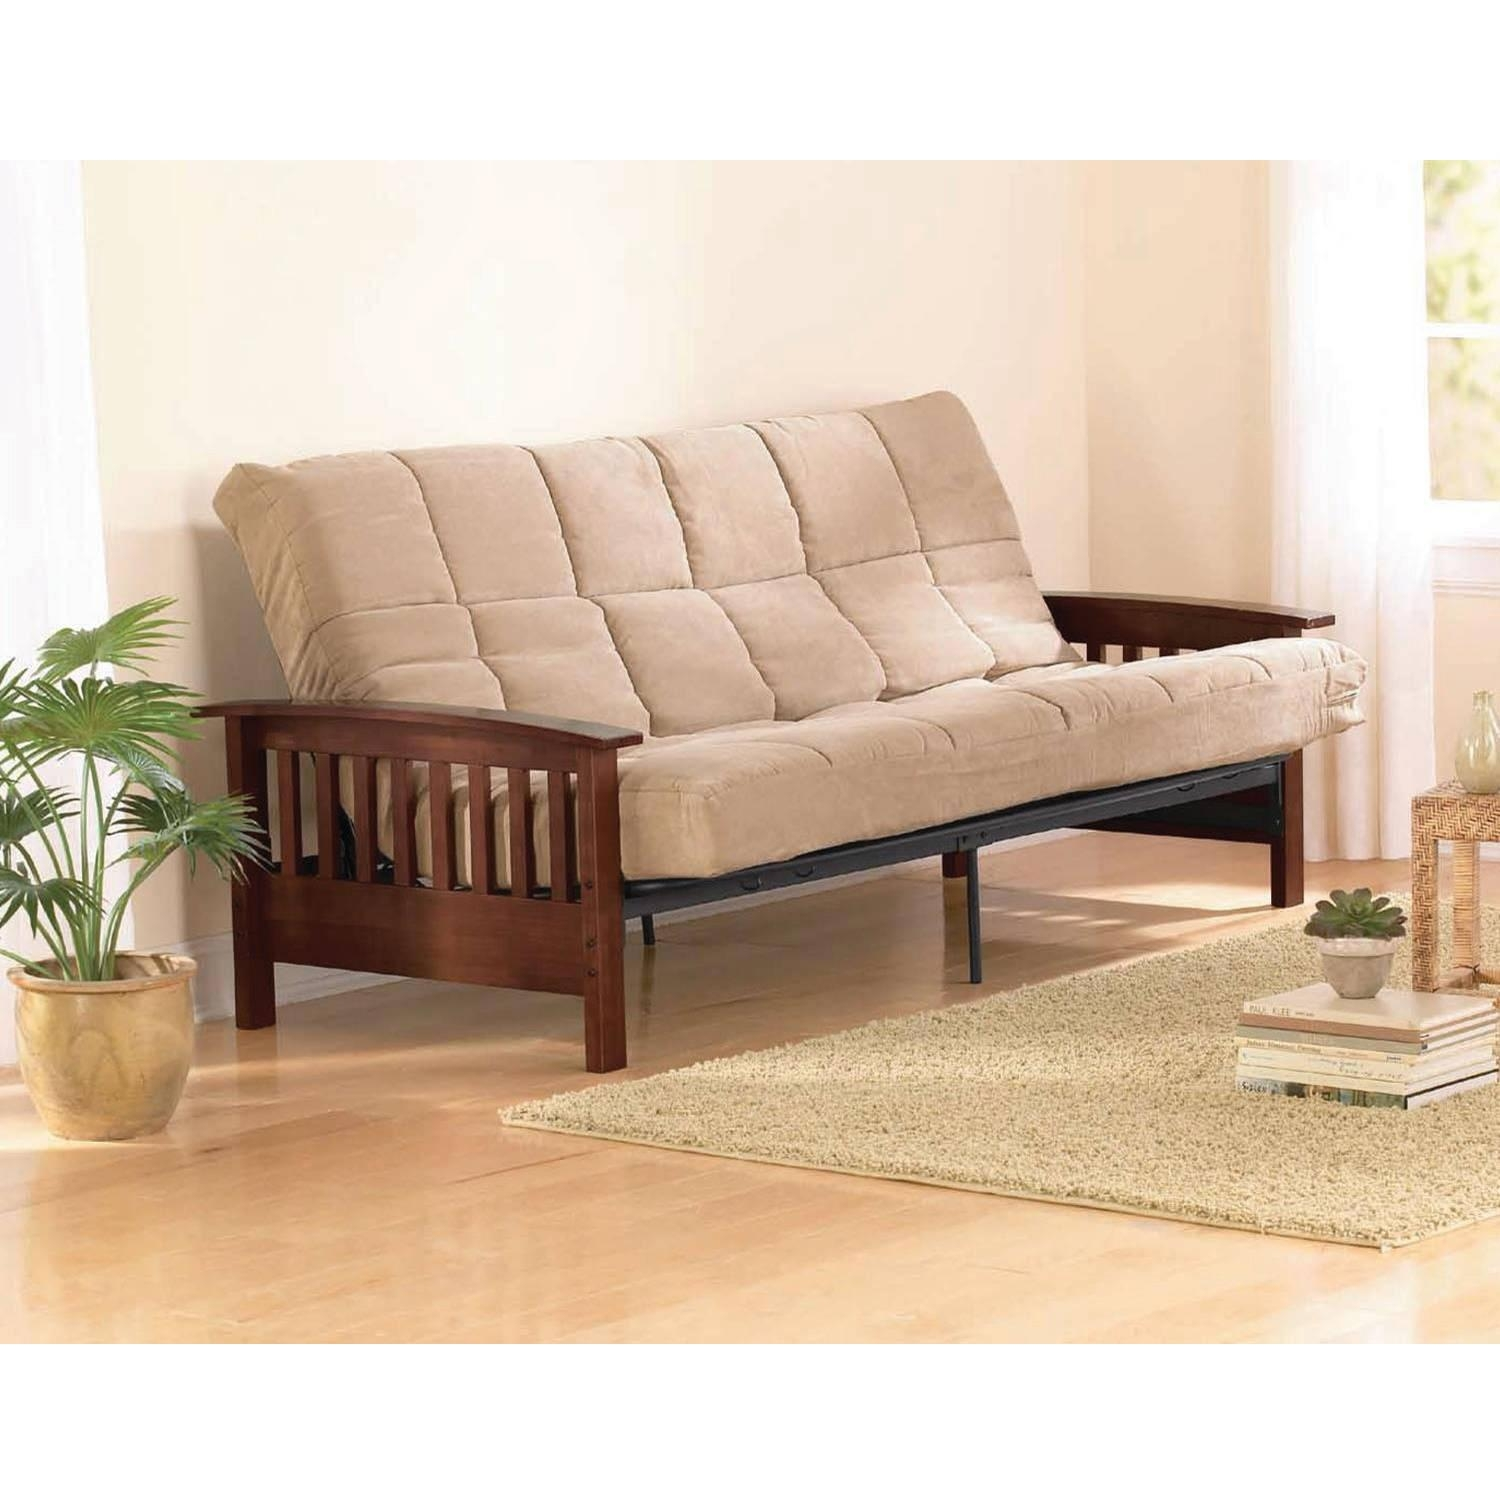 Atherton Home Taylor Convertible Futon Sofa Bed – Walmart Regarding Futon Couch Beds (Image 3 of 20)